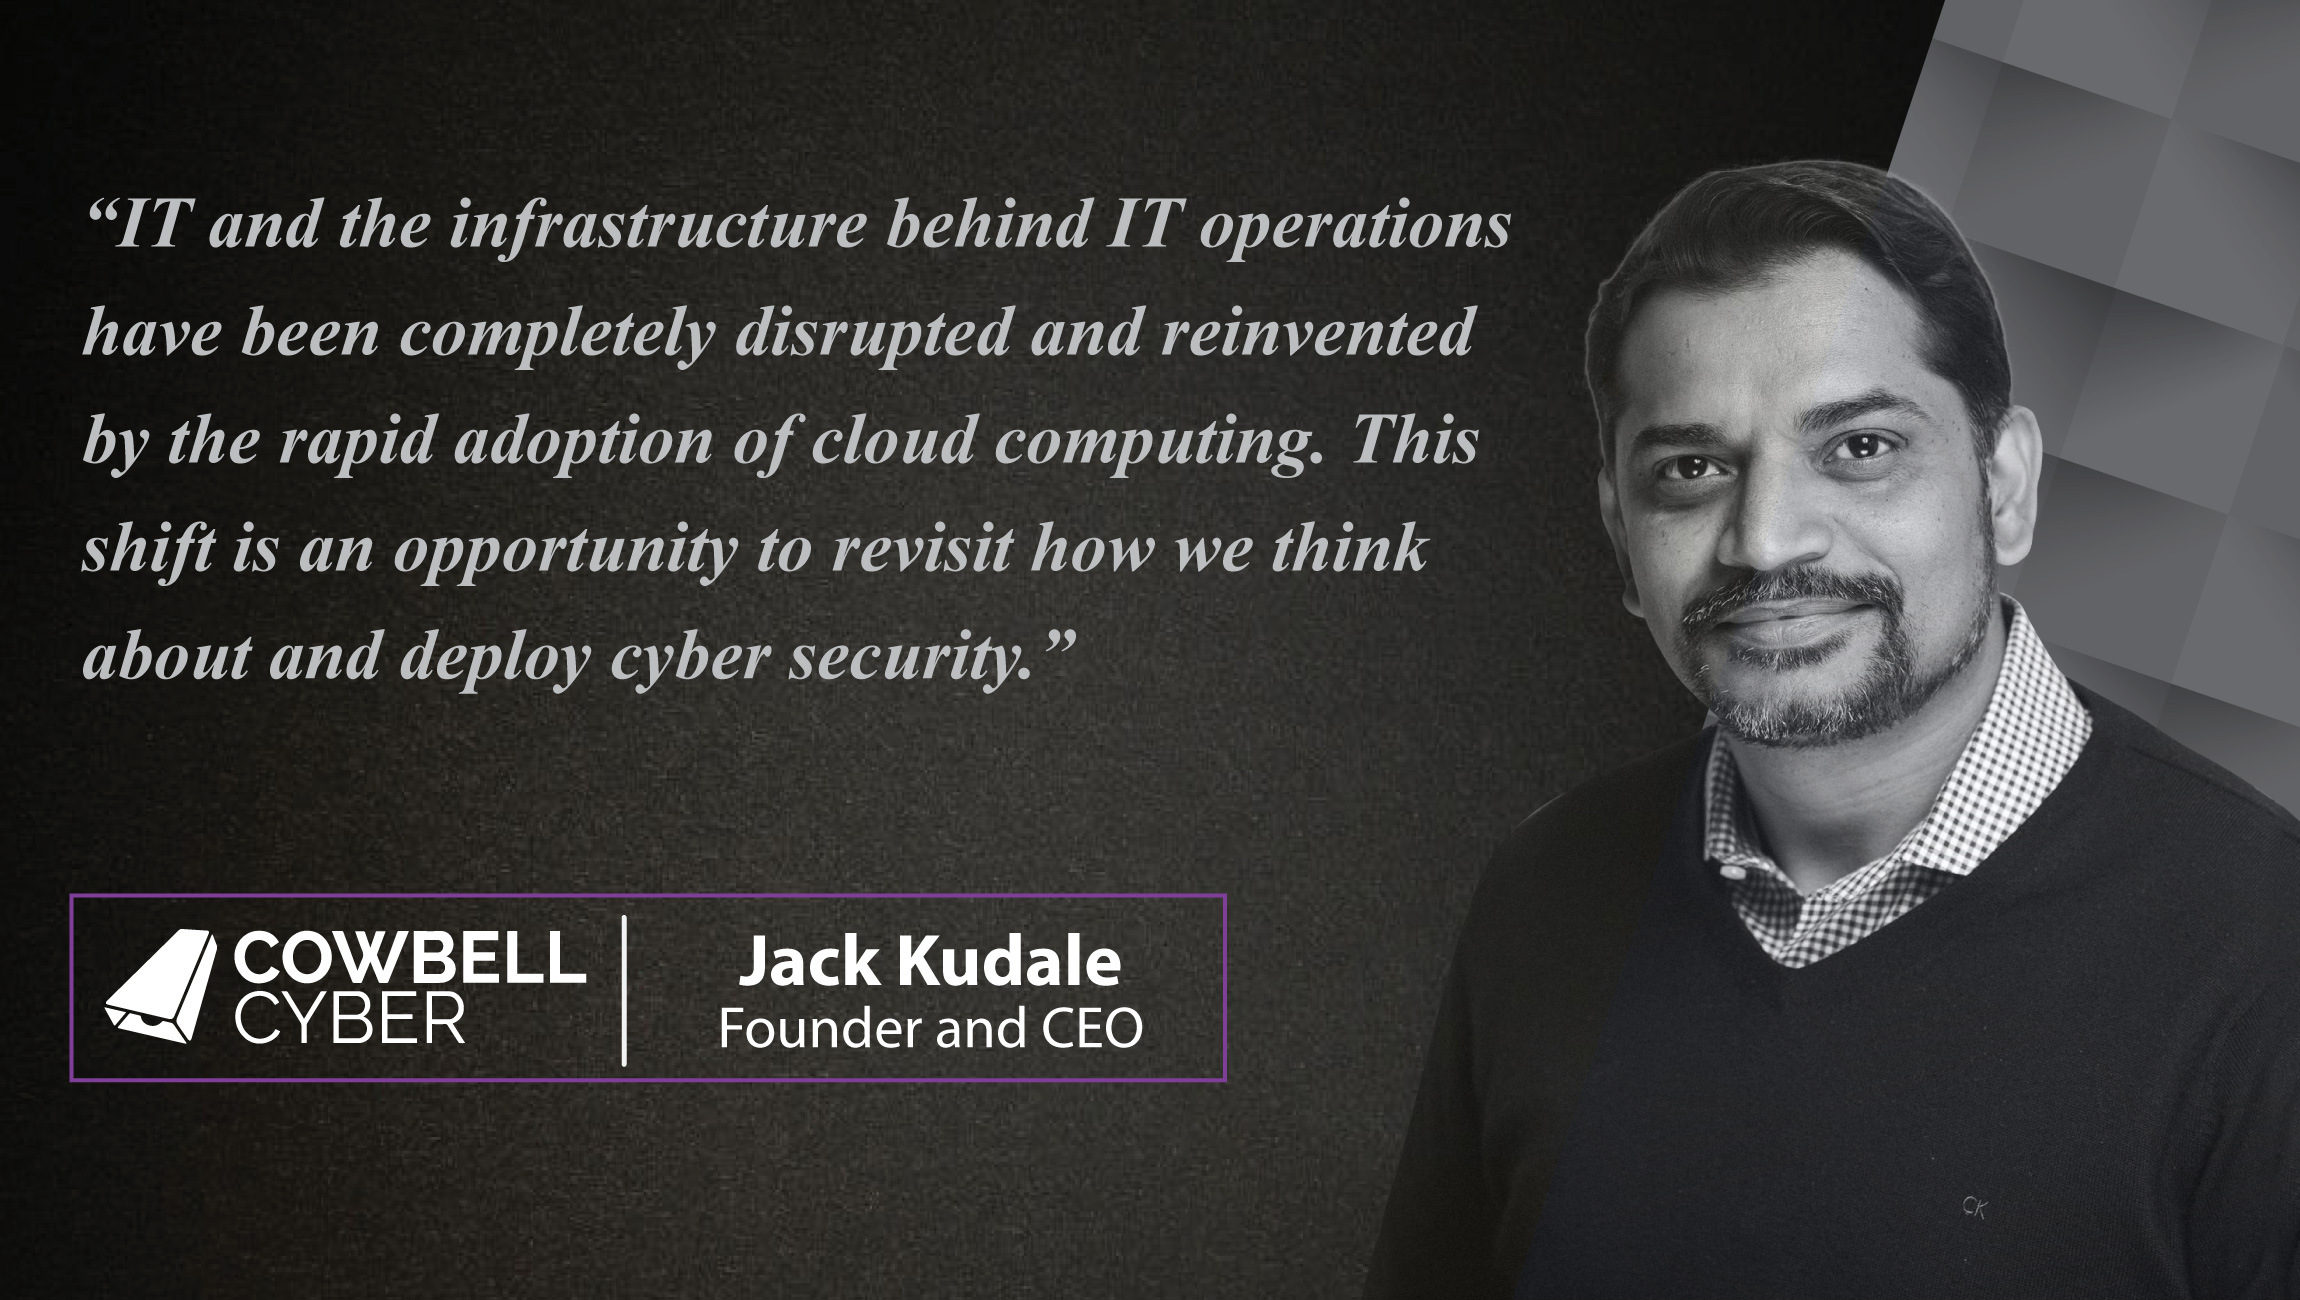 AiThority Interview with Jack Kudale, Founder and CEO at Cowbell Cyber